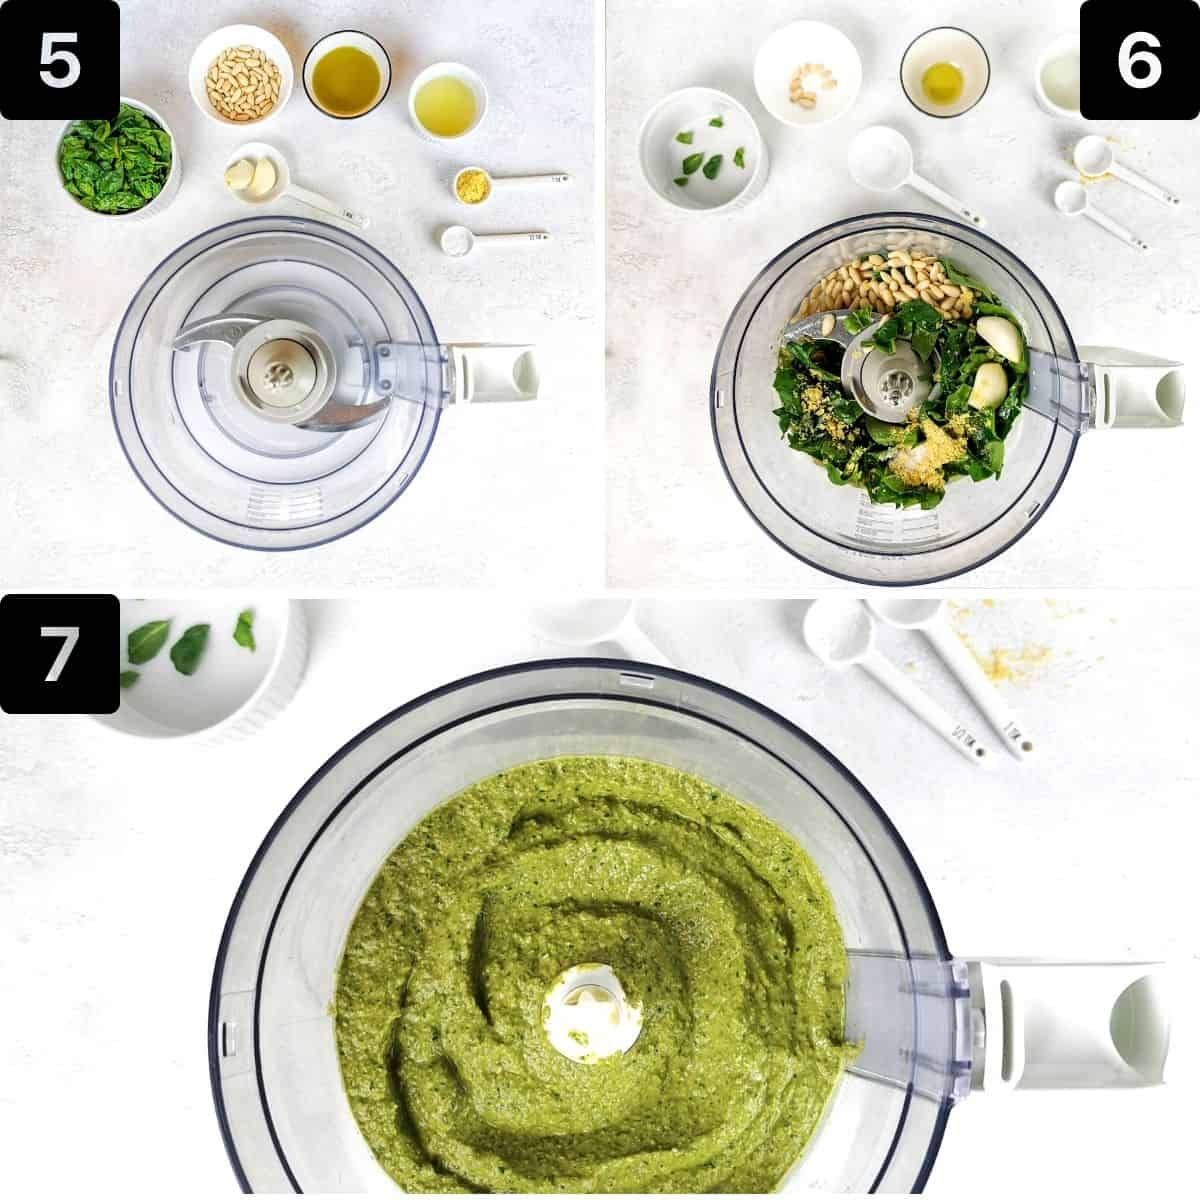 Step-by-step directions to make the pesto sauce.